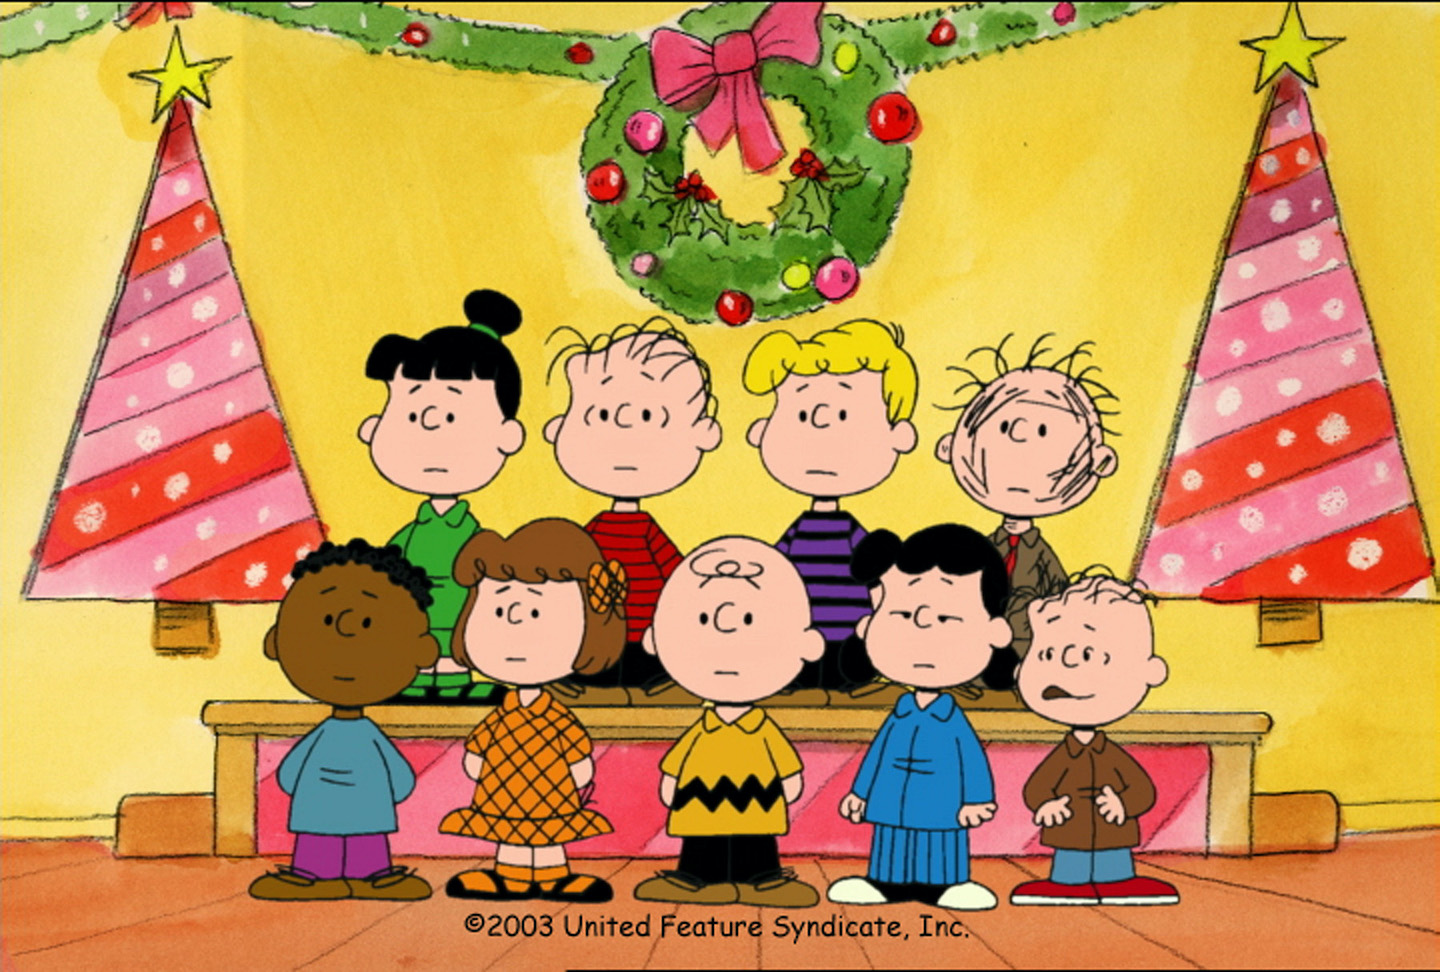 Charlie Brown Christmas 2020 Abc Charlie Brown, Snoopy & Peanuts back for holidays